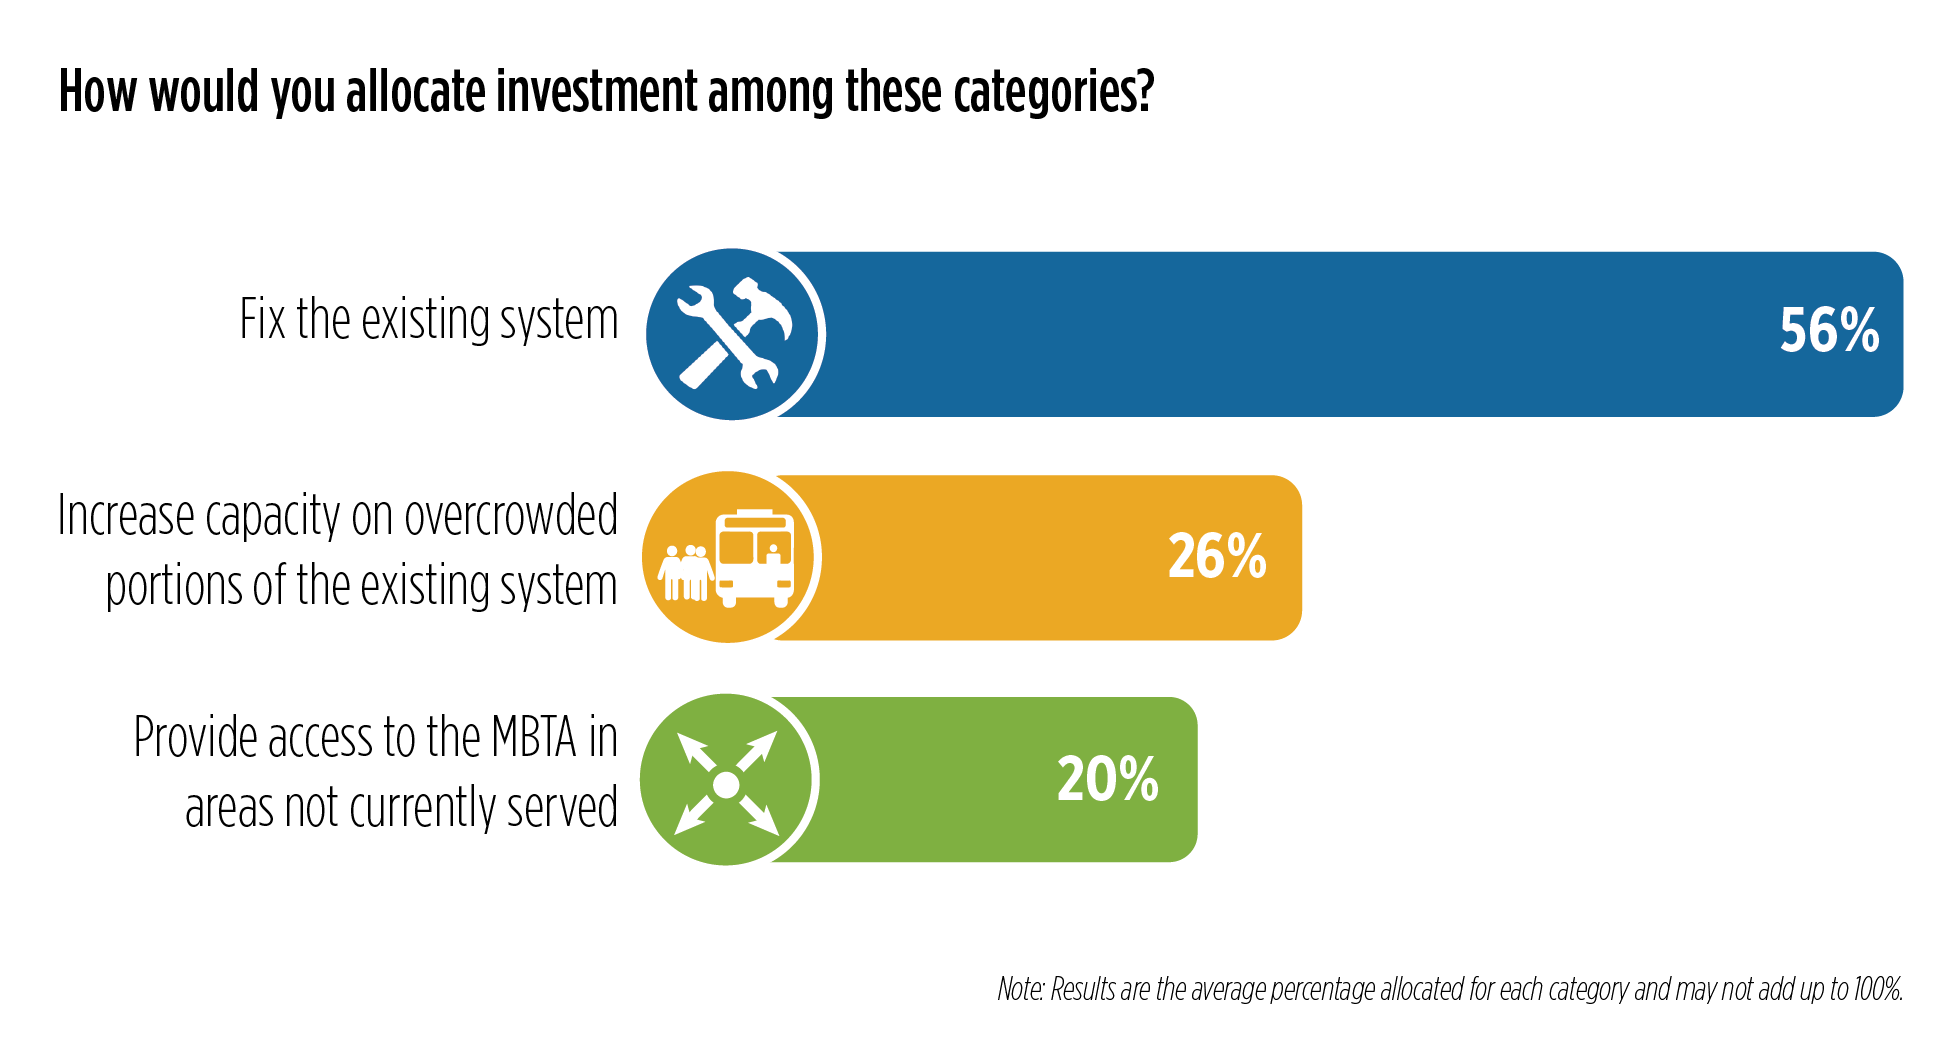 """The image depicts """"How would you allocate investment among these categories?"""" The results of question are: Fix the existing system - 56%; Increase capacity on overcrowded portions of the existing system - 26%; Provide access to the MBTA in areas not currently served - 20%. Note: Results are the average percentage allocated for each category and may not add up to 100%."""